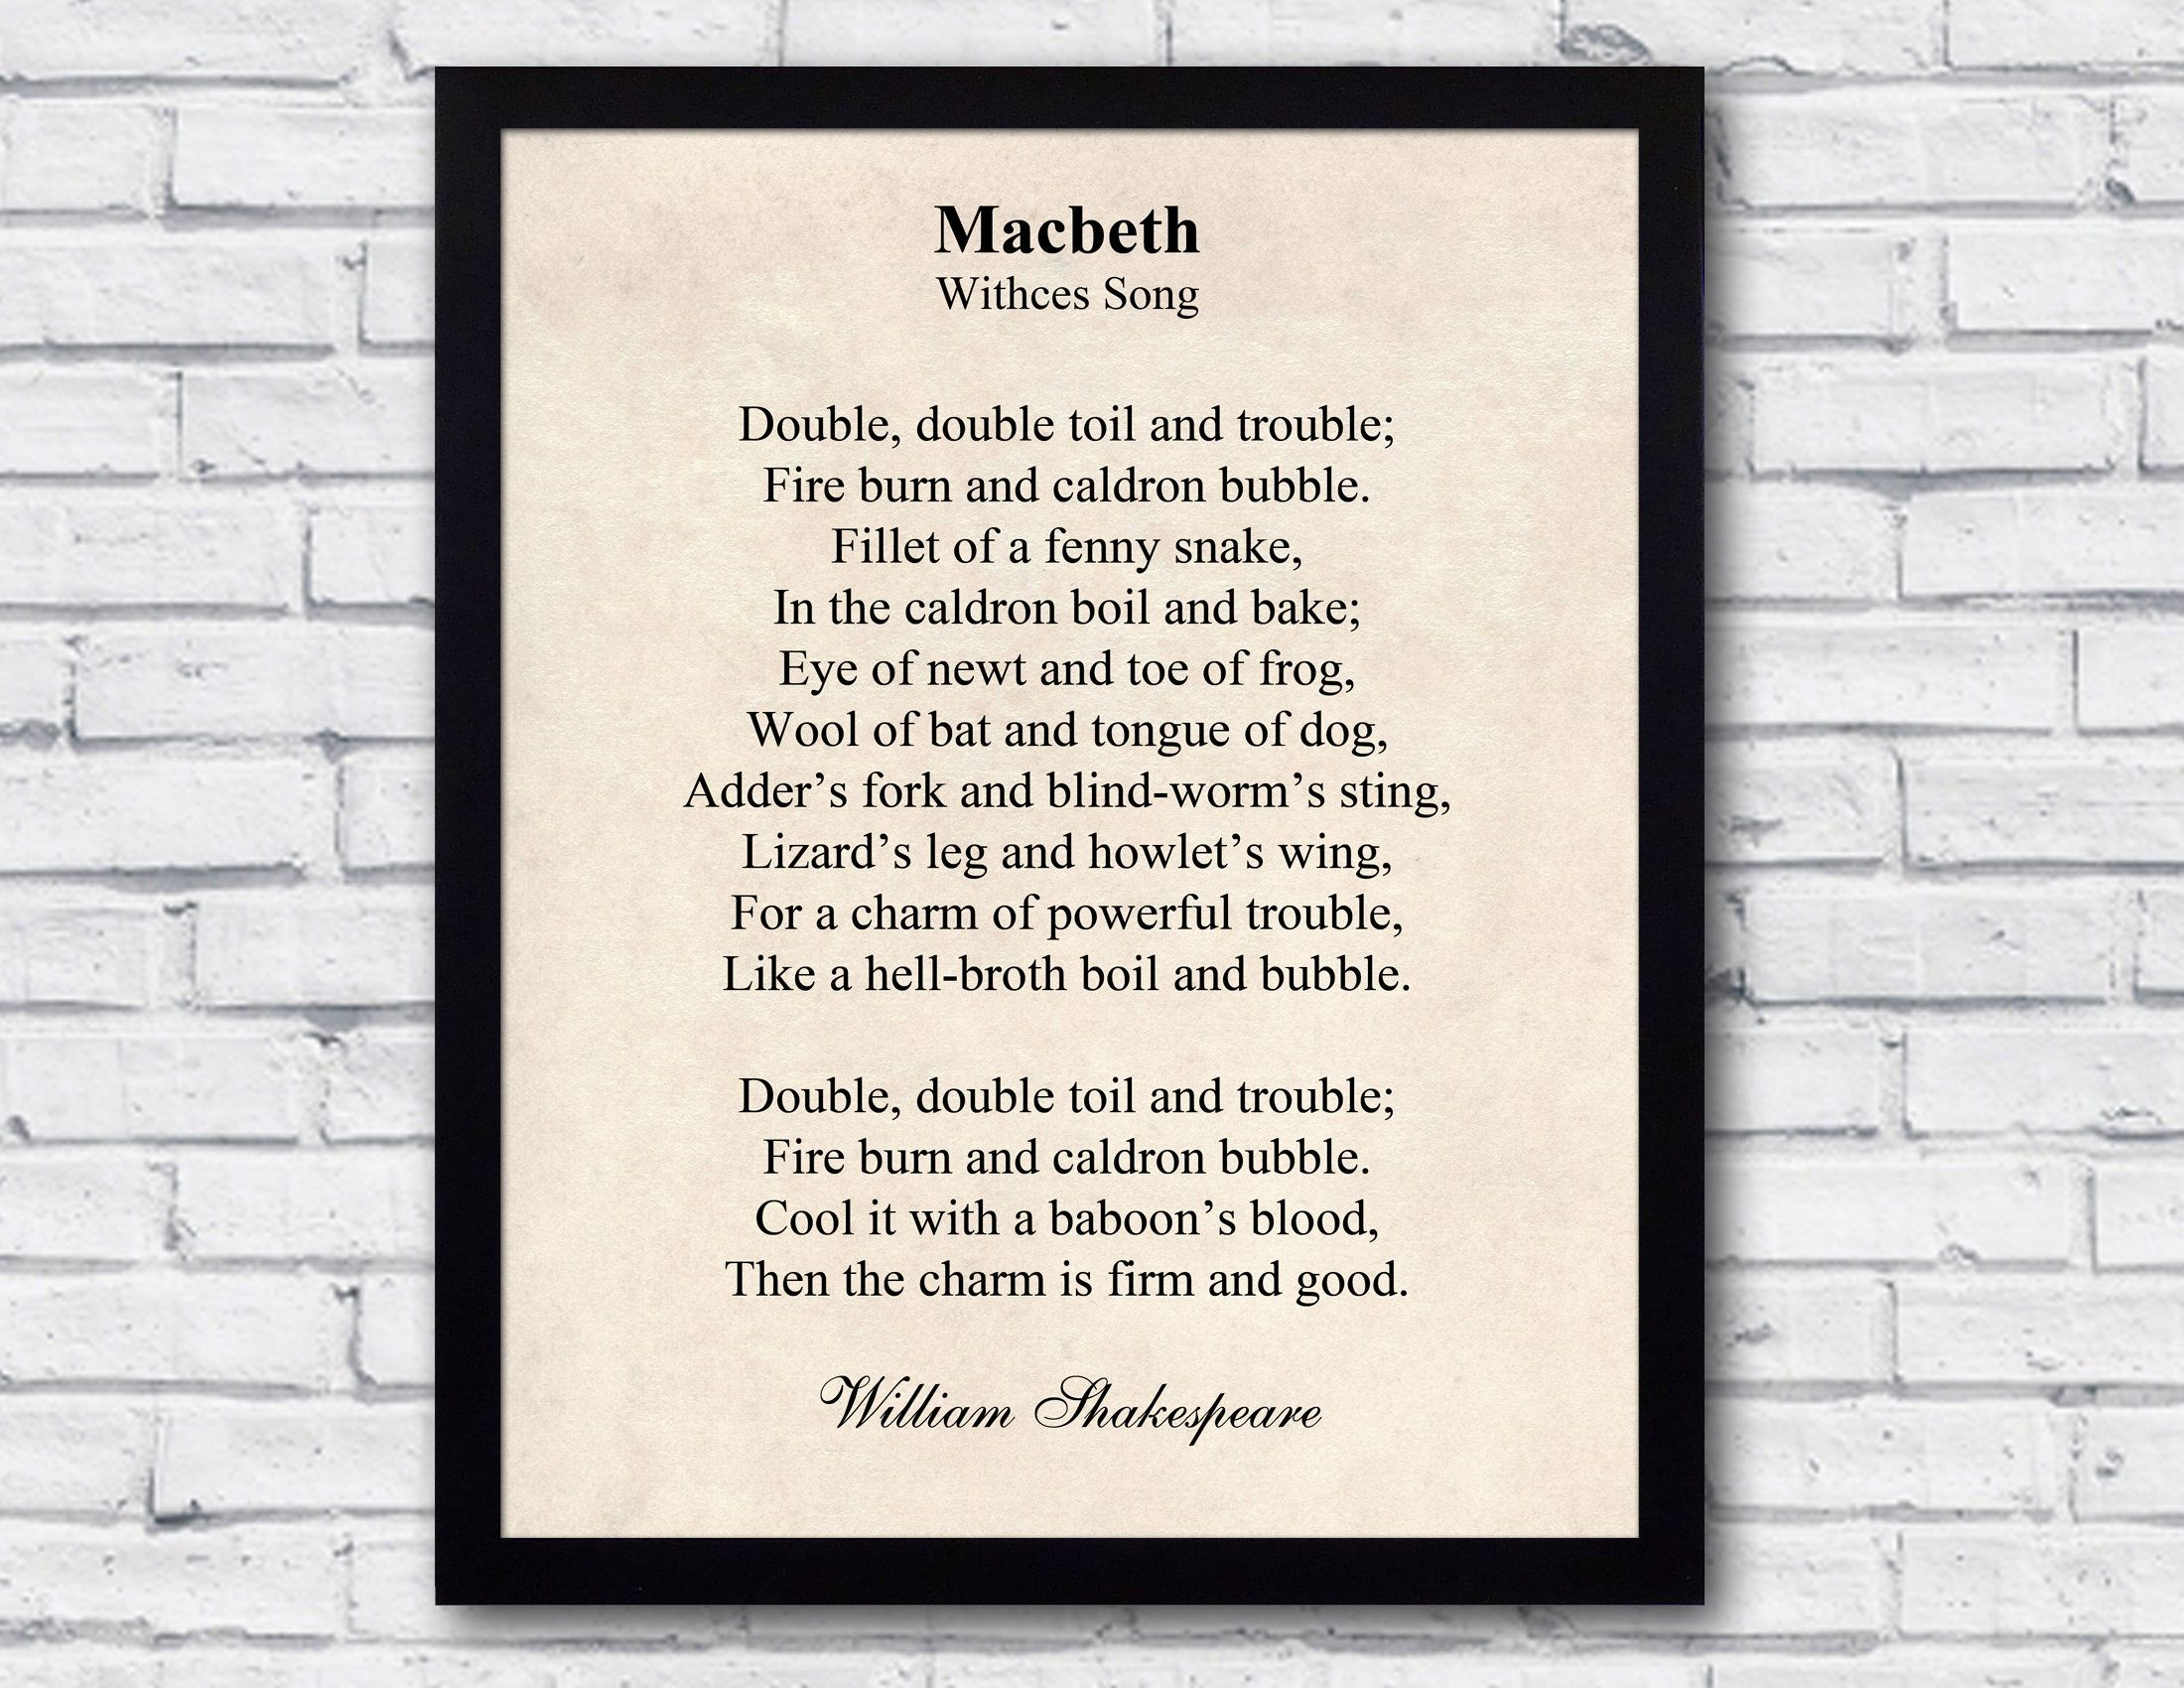 Macbeth quote william shakespeare wall art witches song